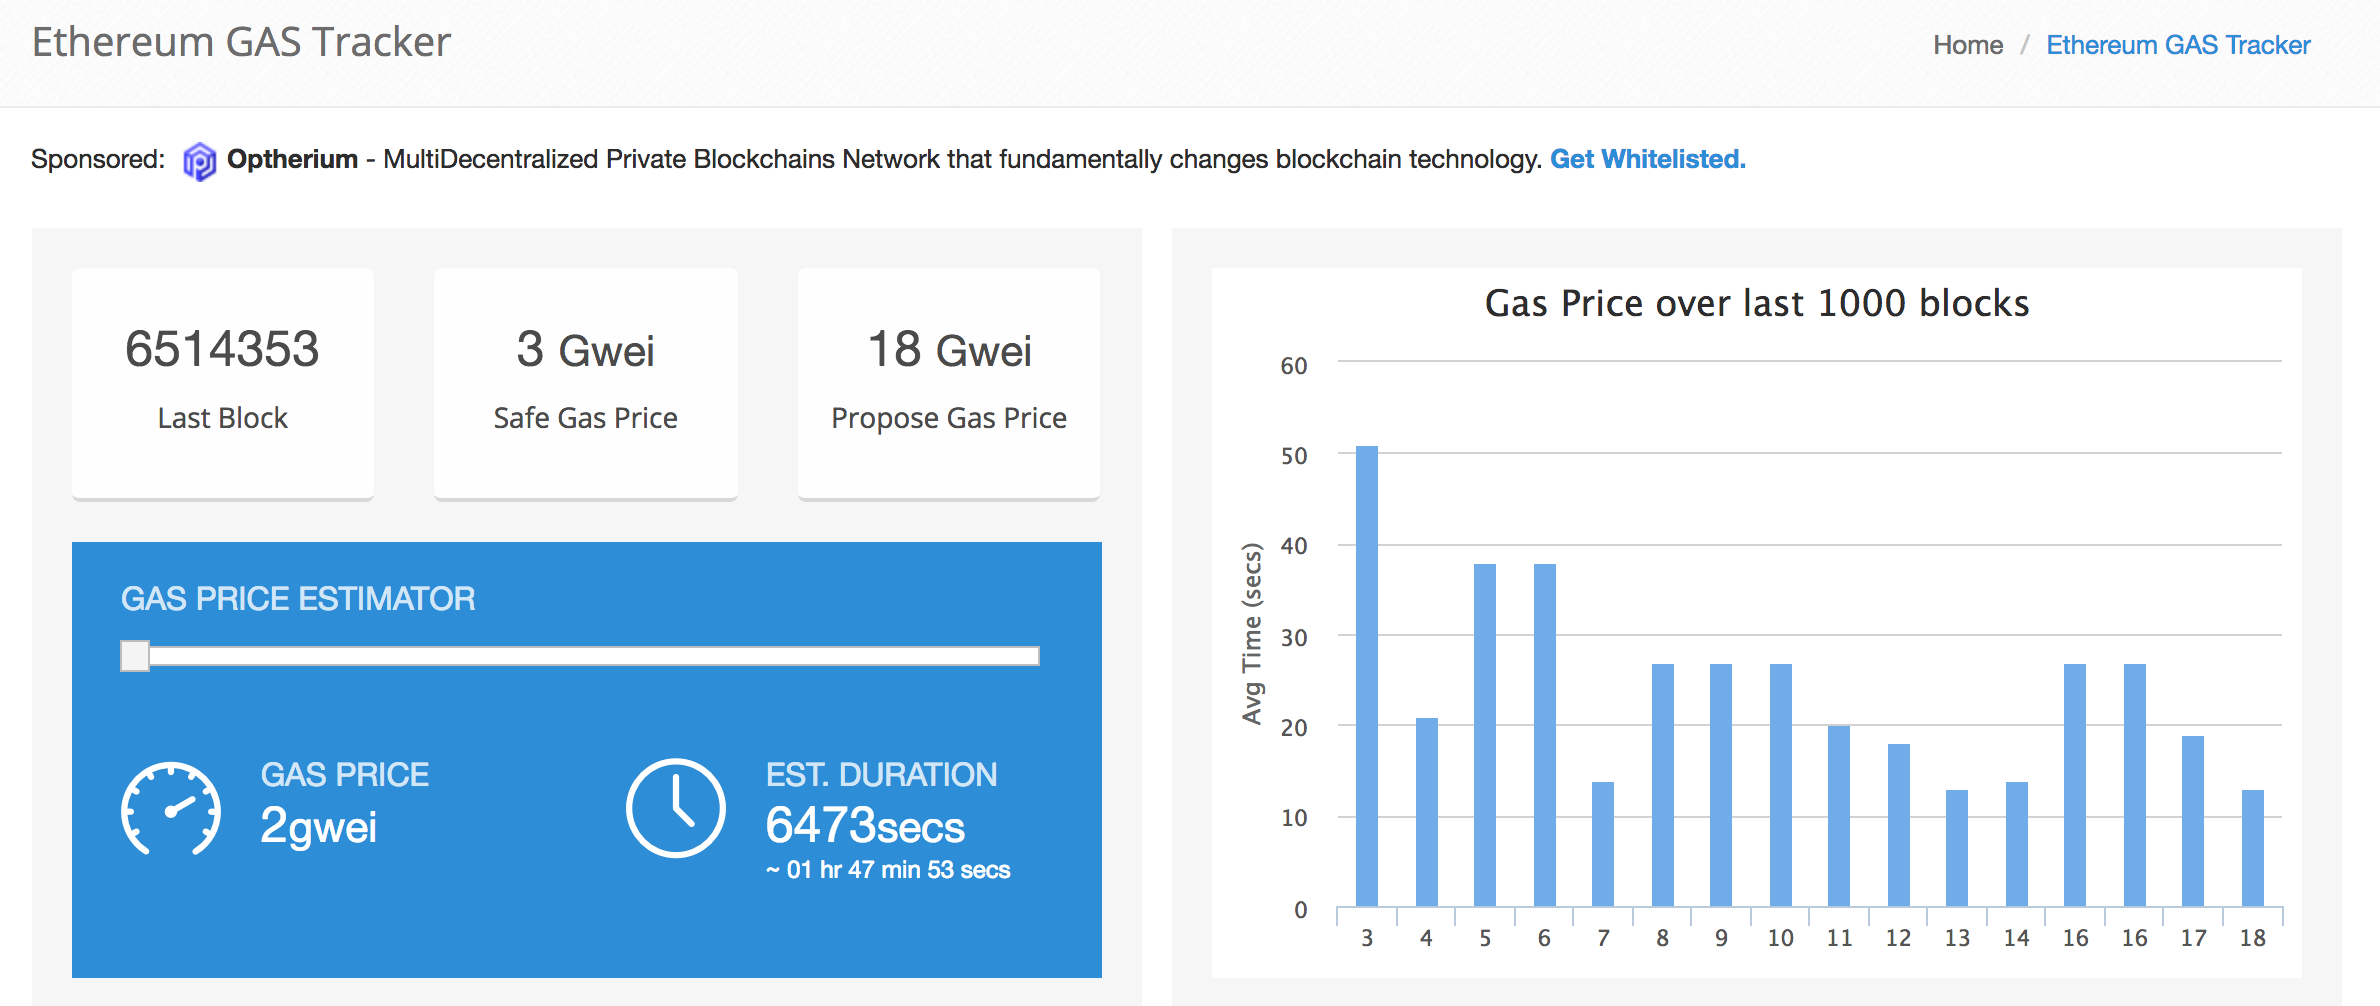 Ethereum GAS Tracker